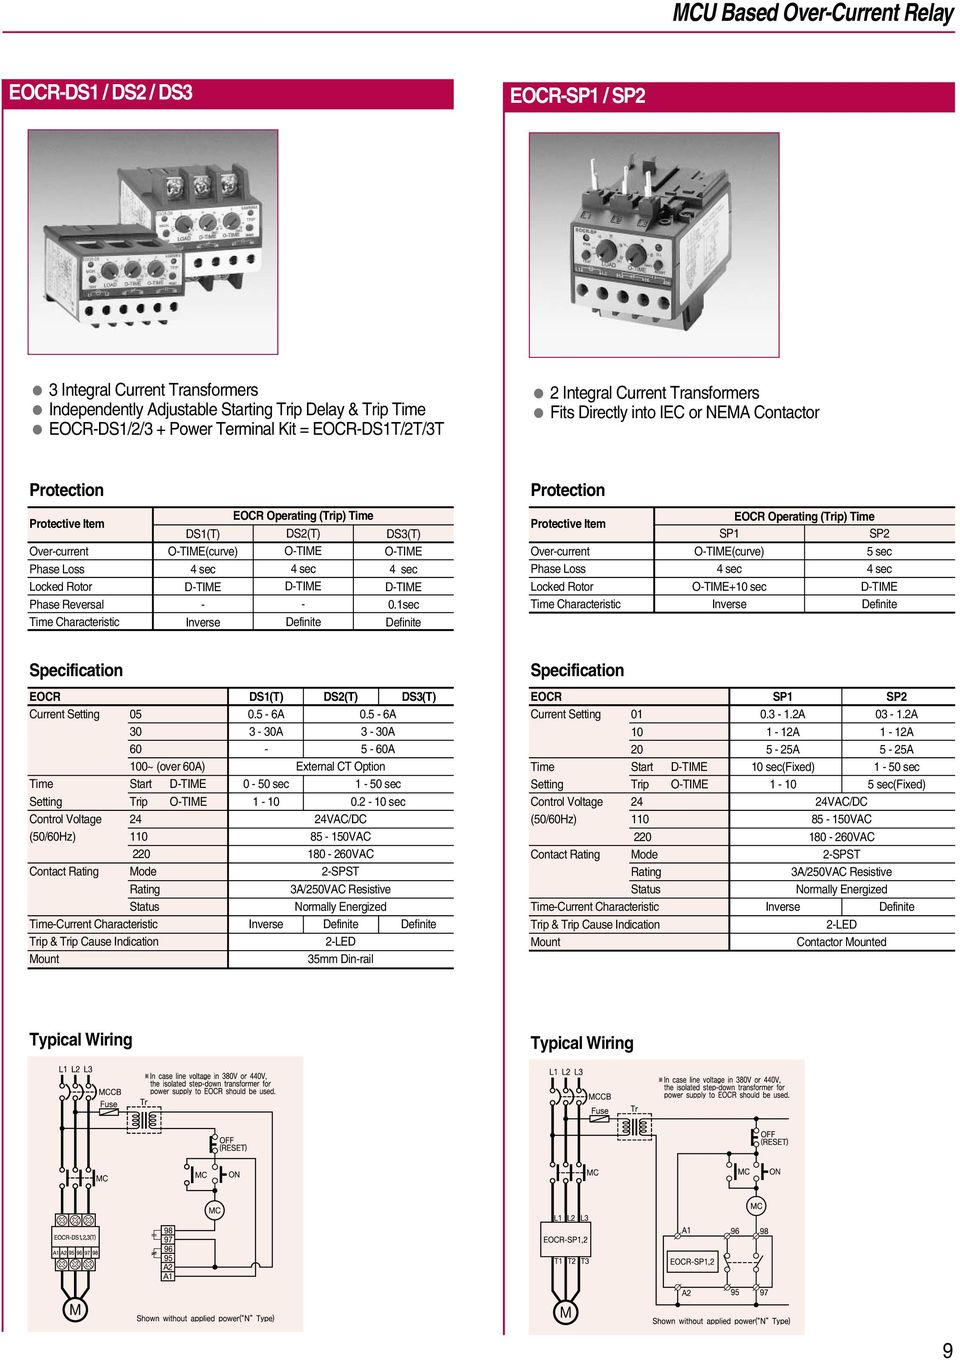 Electronic Over Current Relays Pdf Protection Dc Circuit Breaker With Time Delay Beijing Otime 4 Sec Dtime Definite Ds3t 0